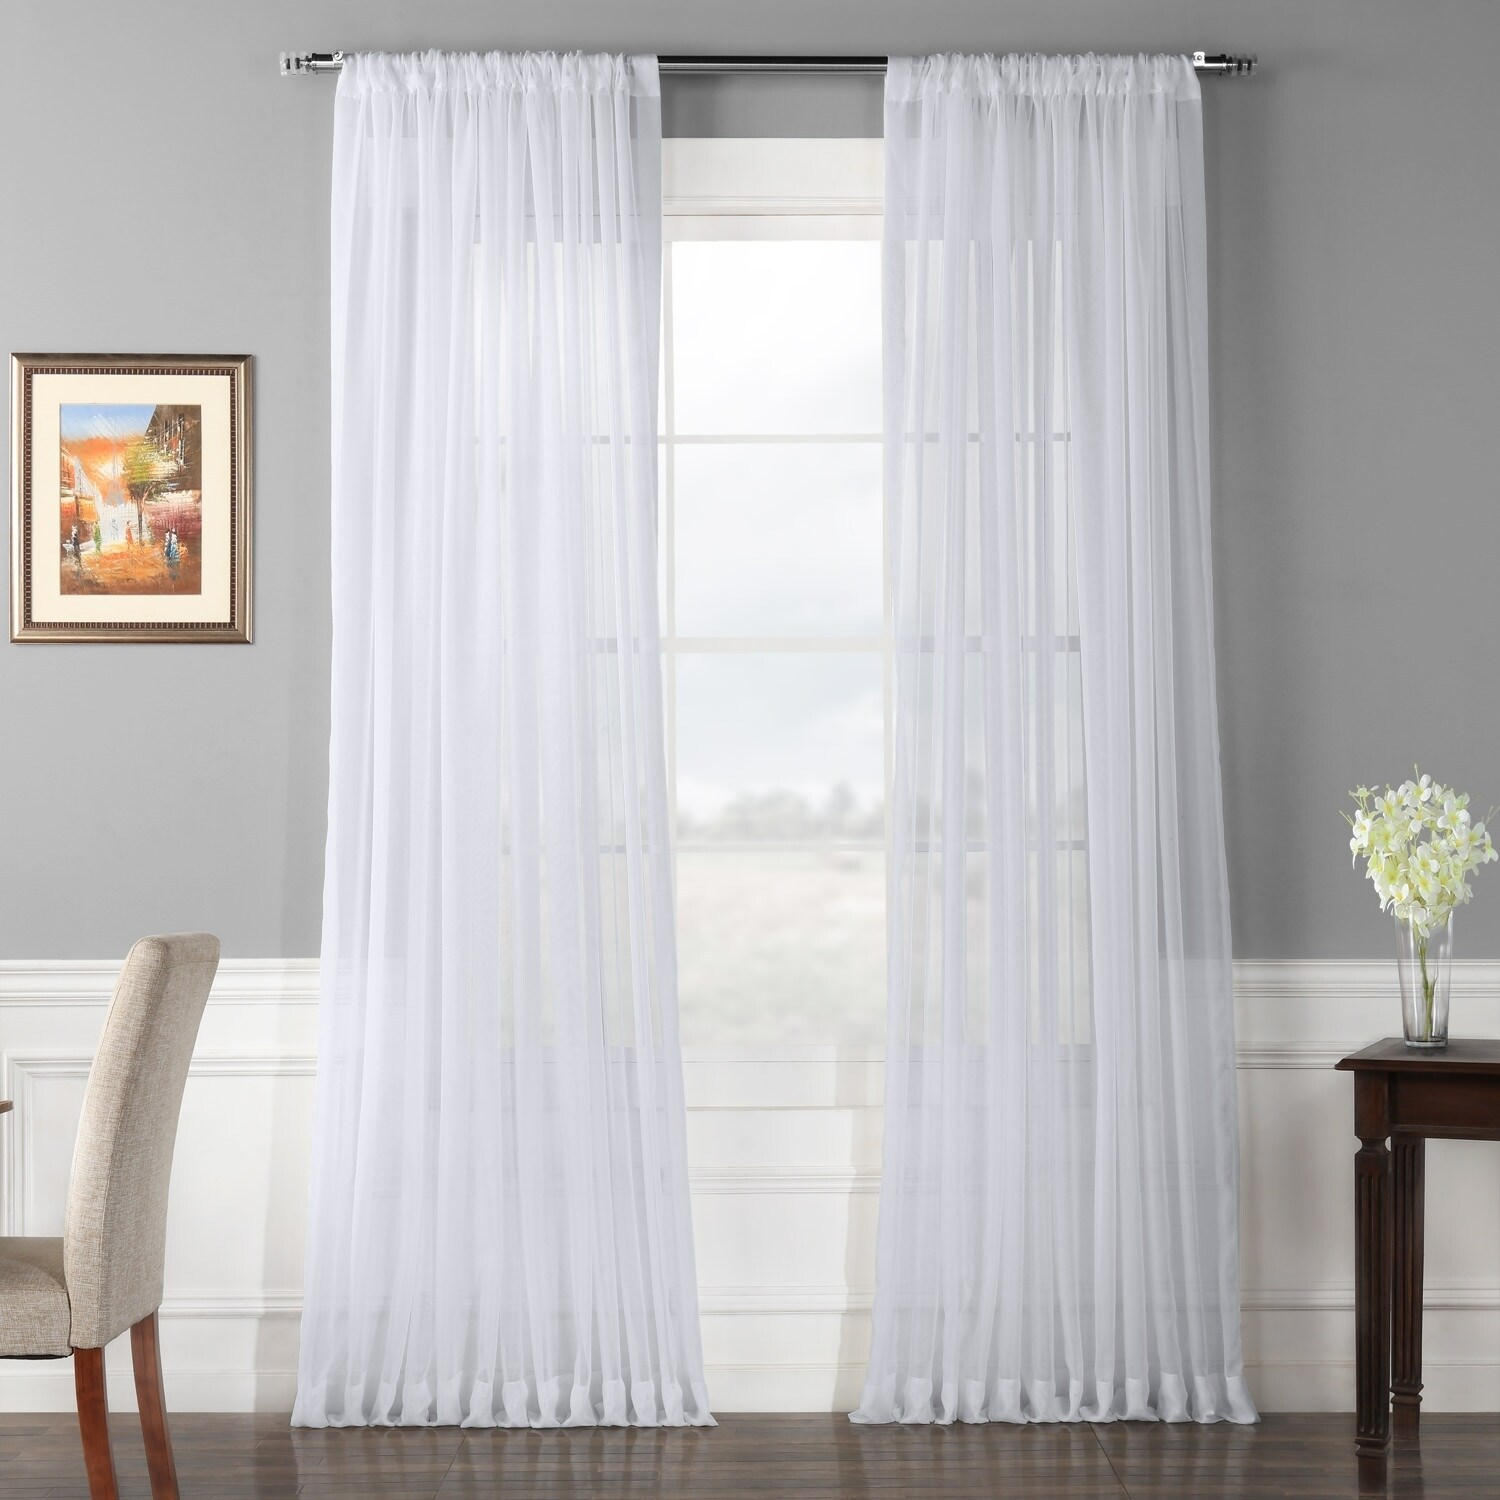 Double Wide Curtain Panels Exclusive Fabrics Extra Wide White Voile Sheer Curtain Panel